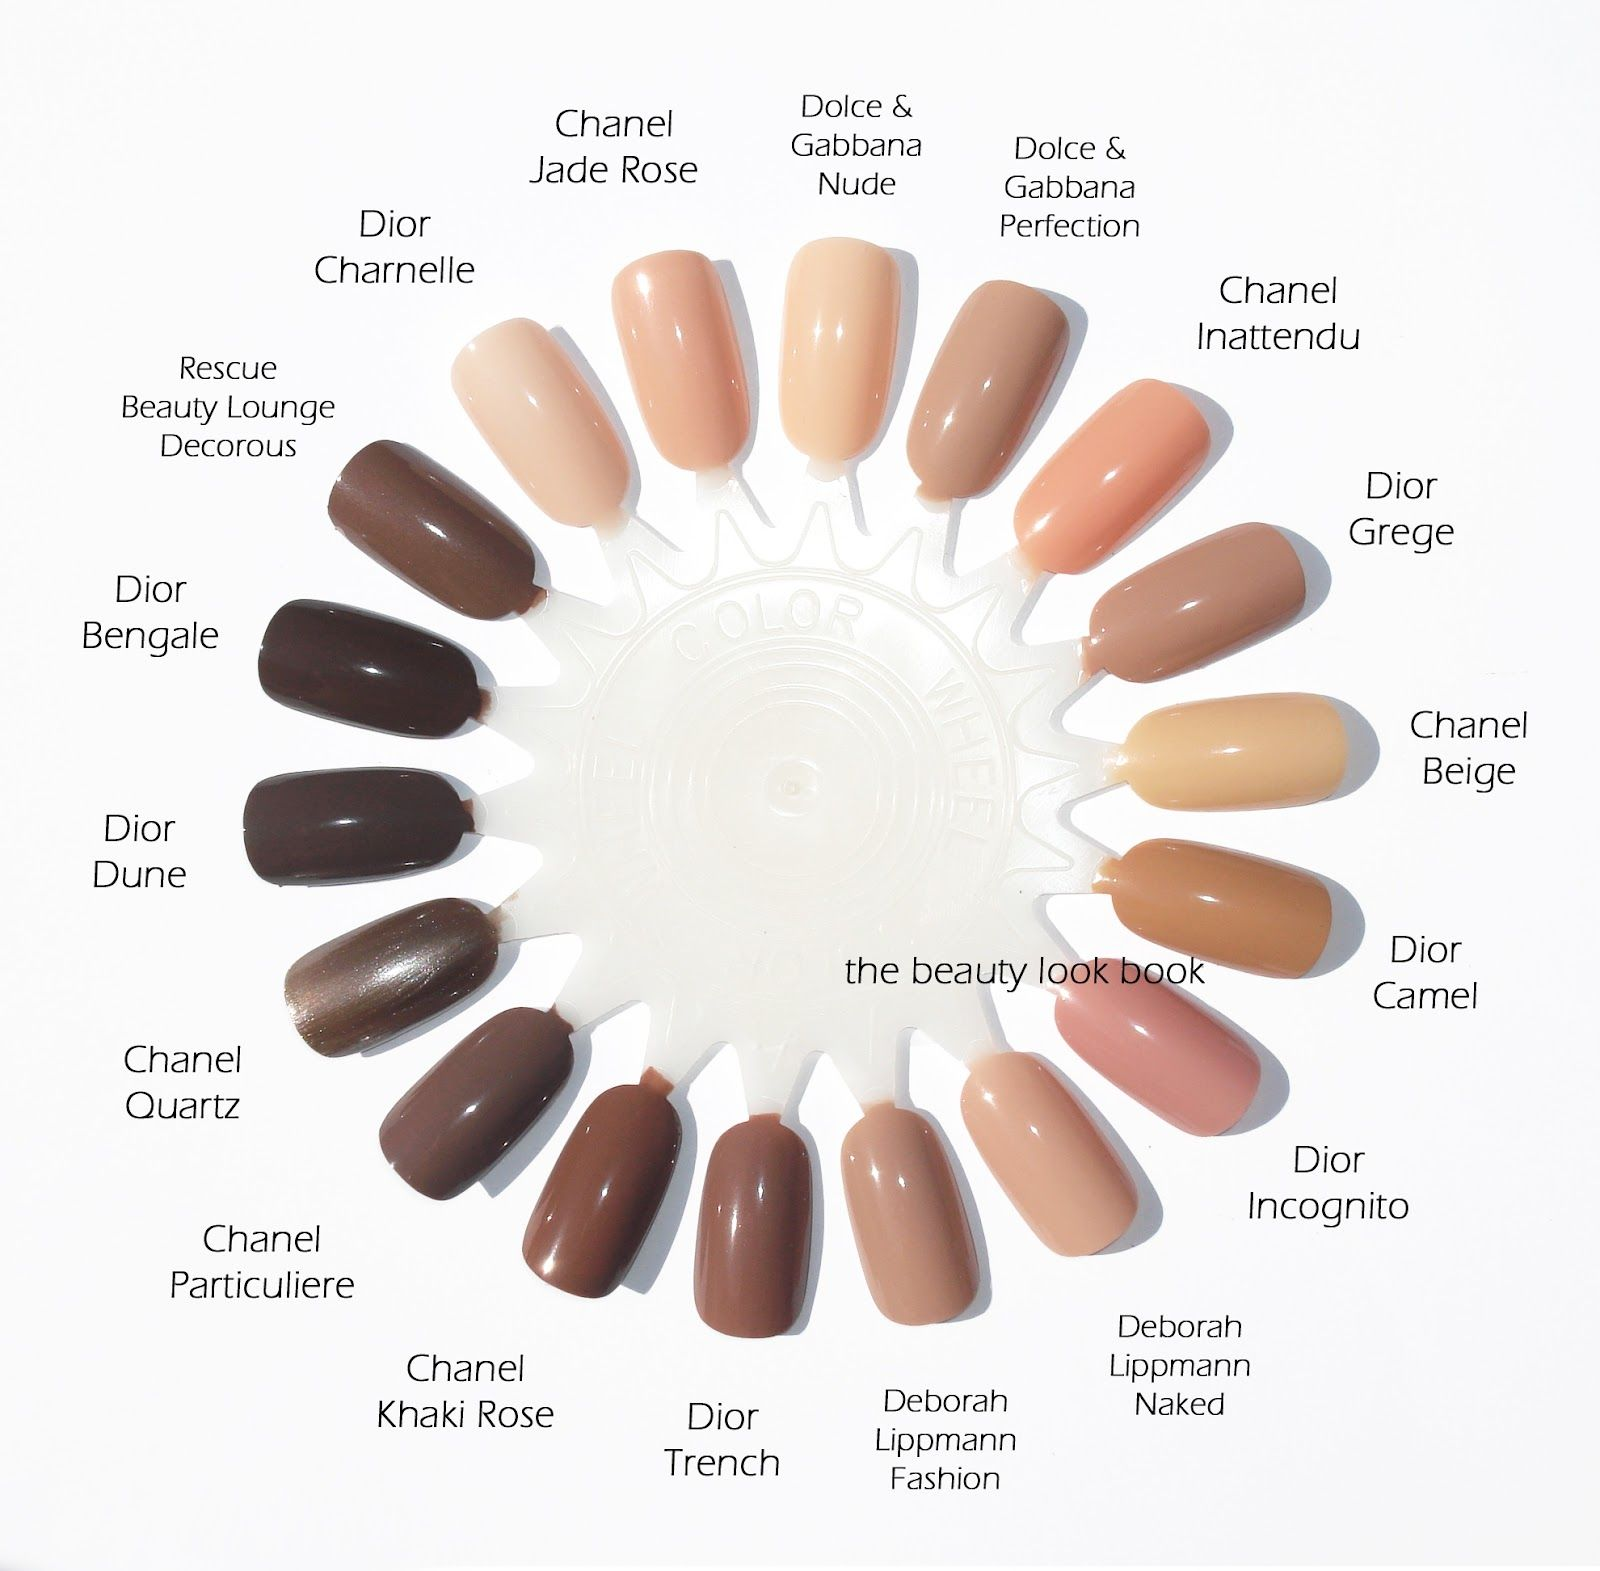 The Beauty Look Book: Dior Vernis: Nudes in Charnelle, Grège, Trench ...